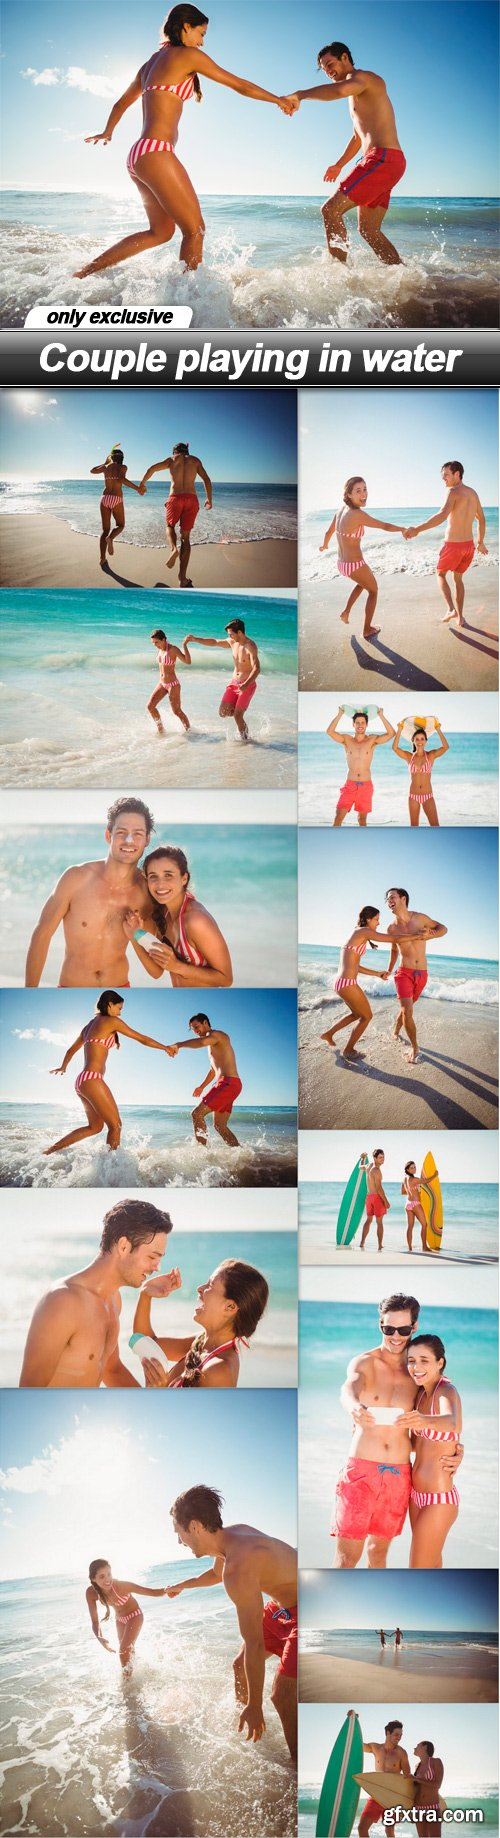 Couple playing in water - 13 UHQ JPEG